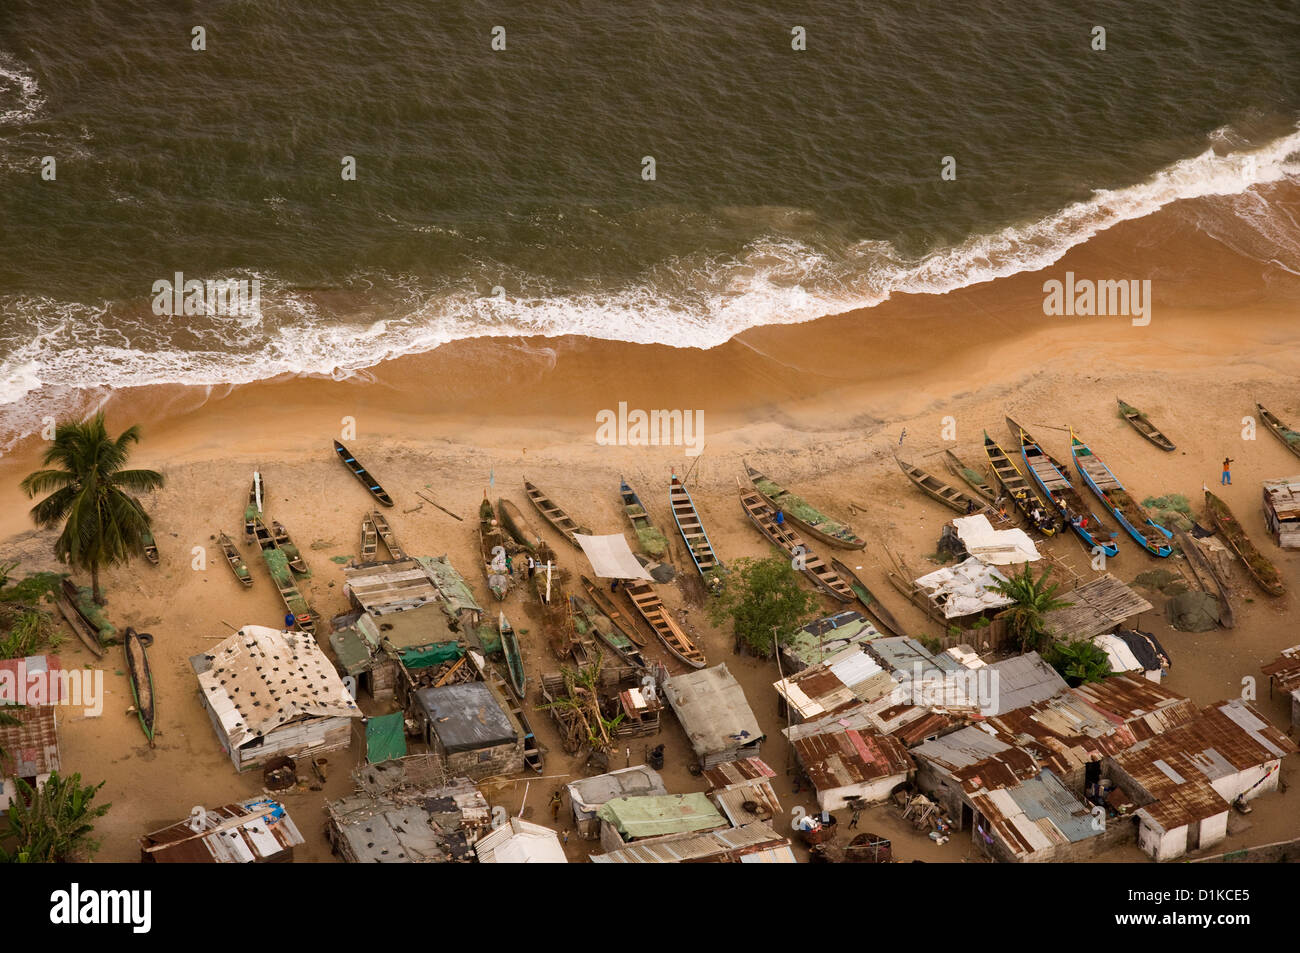 A few miles to the west of Monrovia, a snapshot of a fishing village from above. - Stock Image